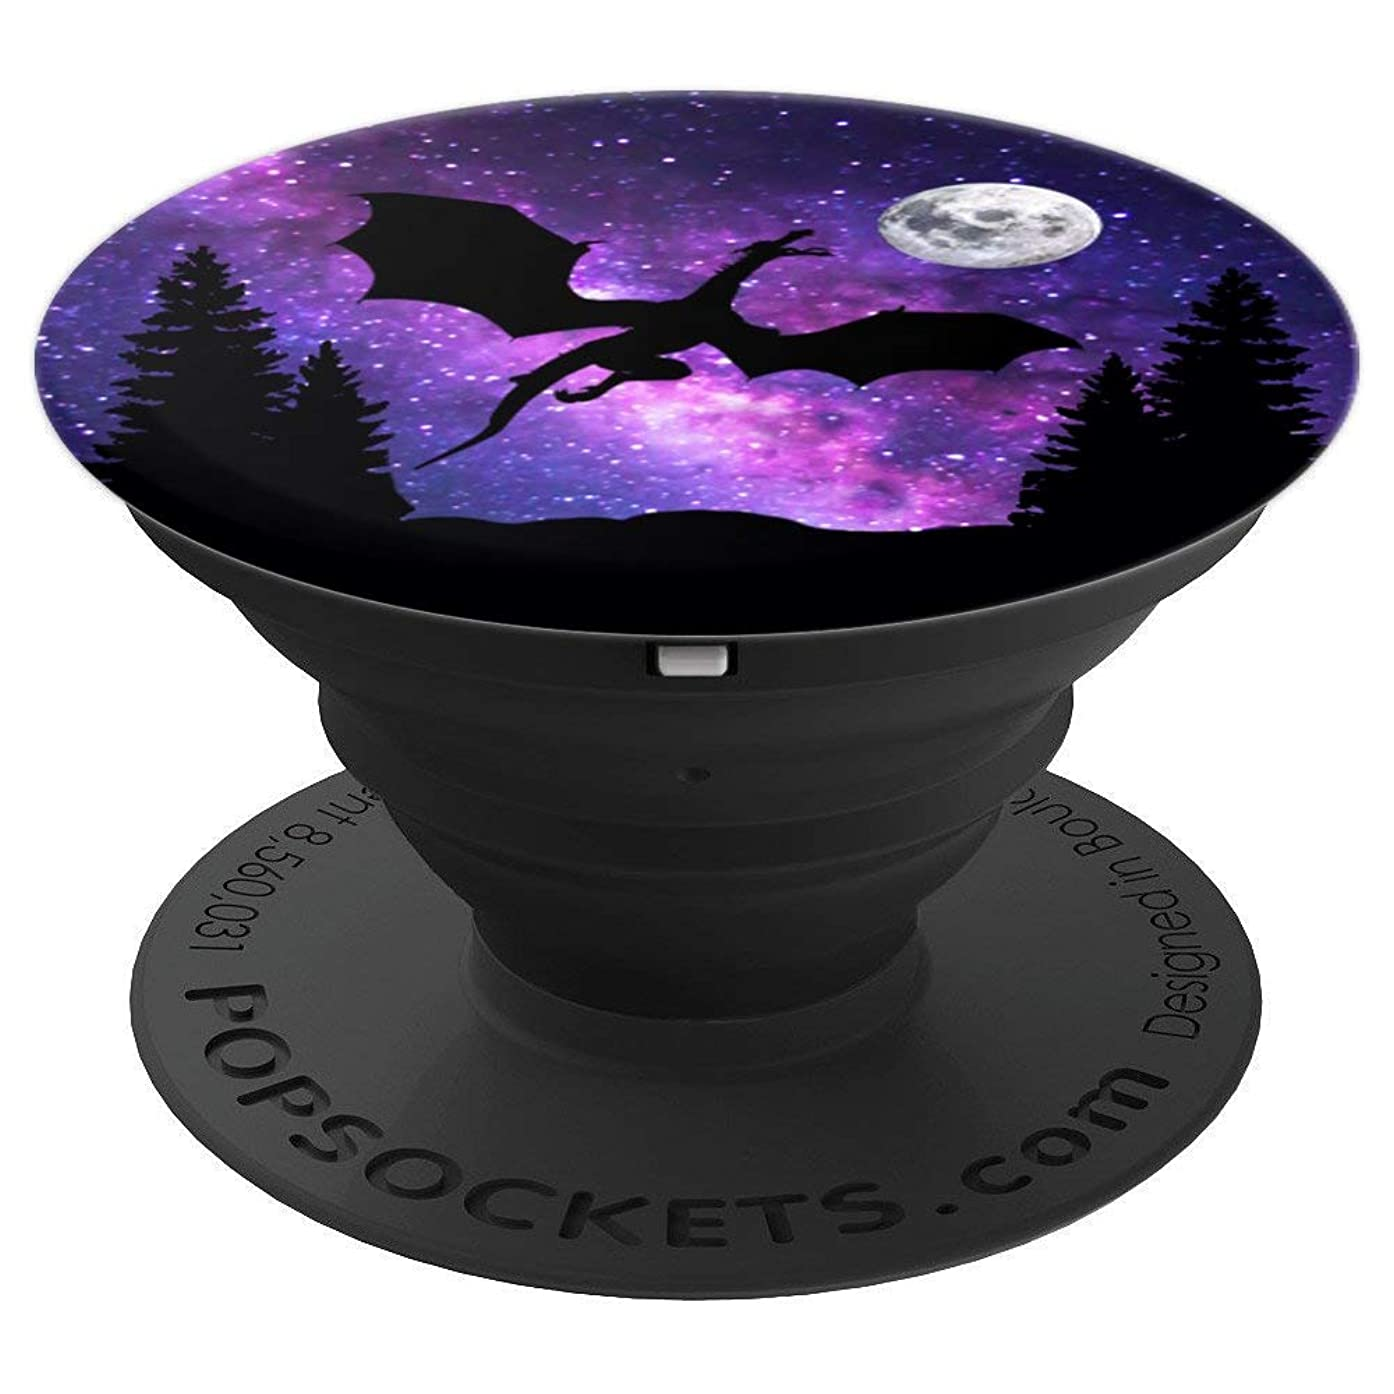 Dragon In The Woods Moon Purple Galaxy Astronomy Gift - PopSockets Grip and Stand for Phones and Tablets